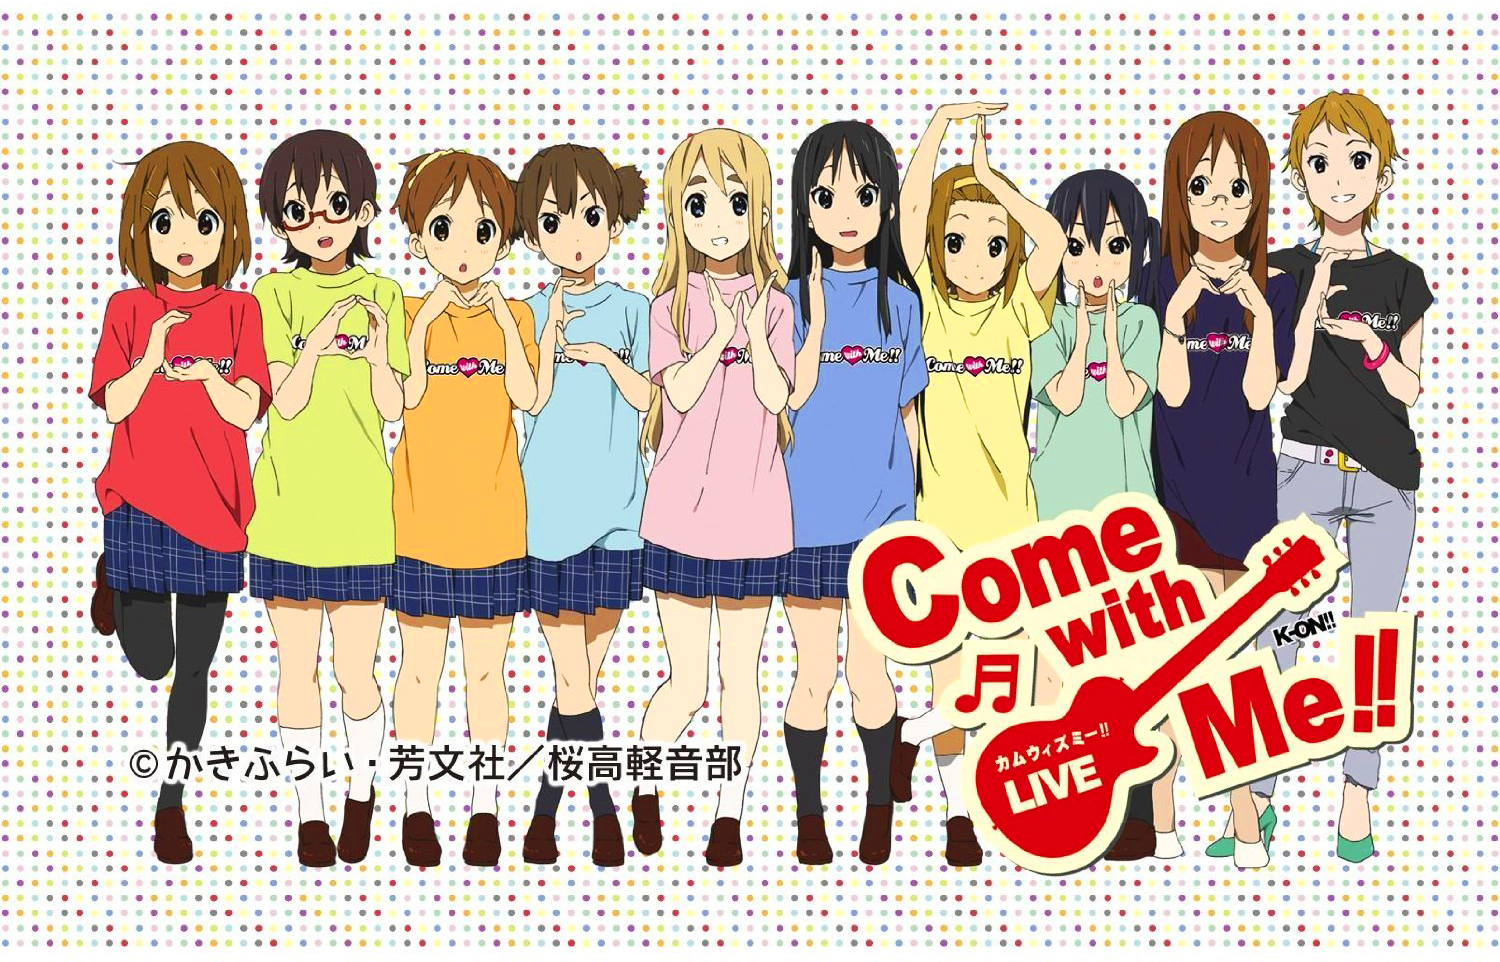 K-ON! Come With Me